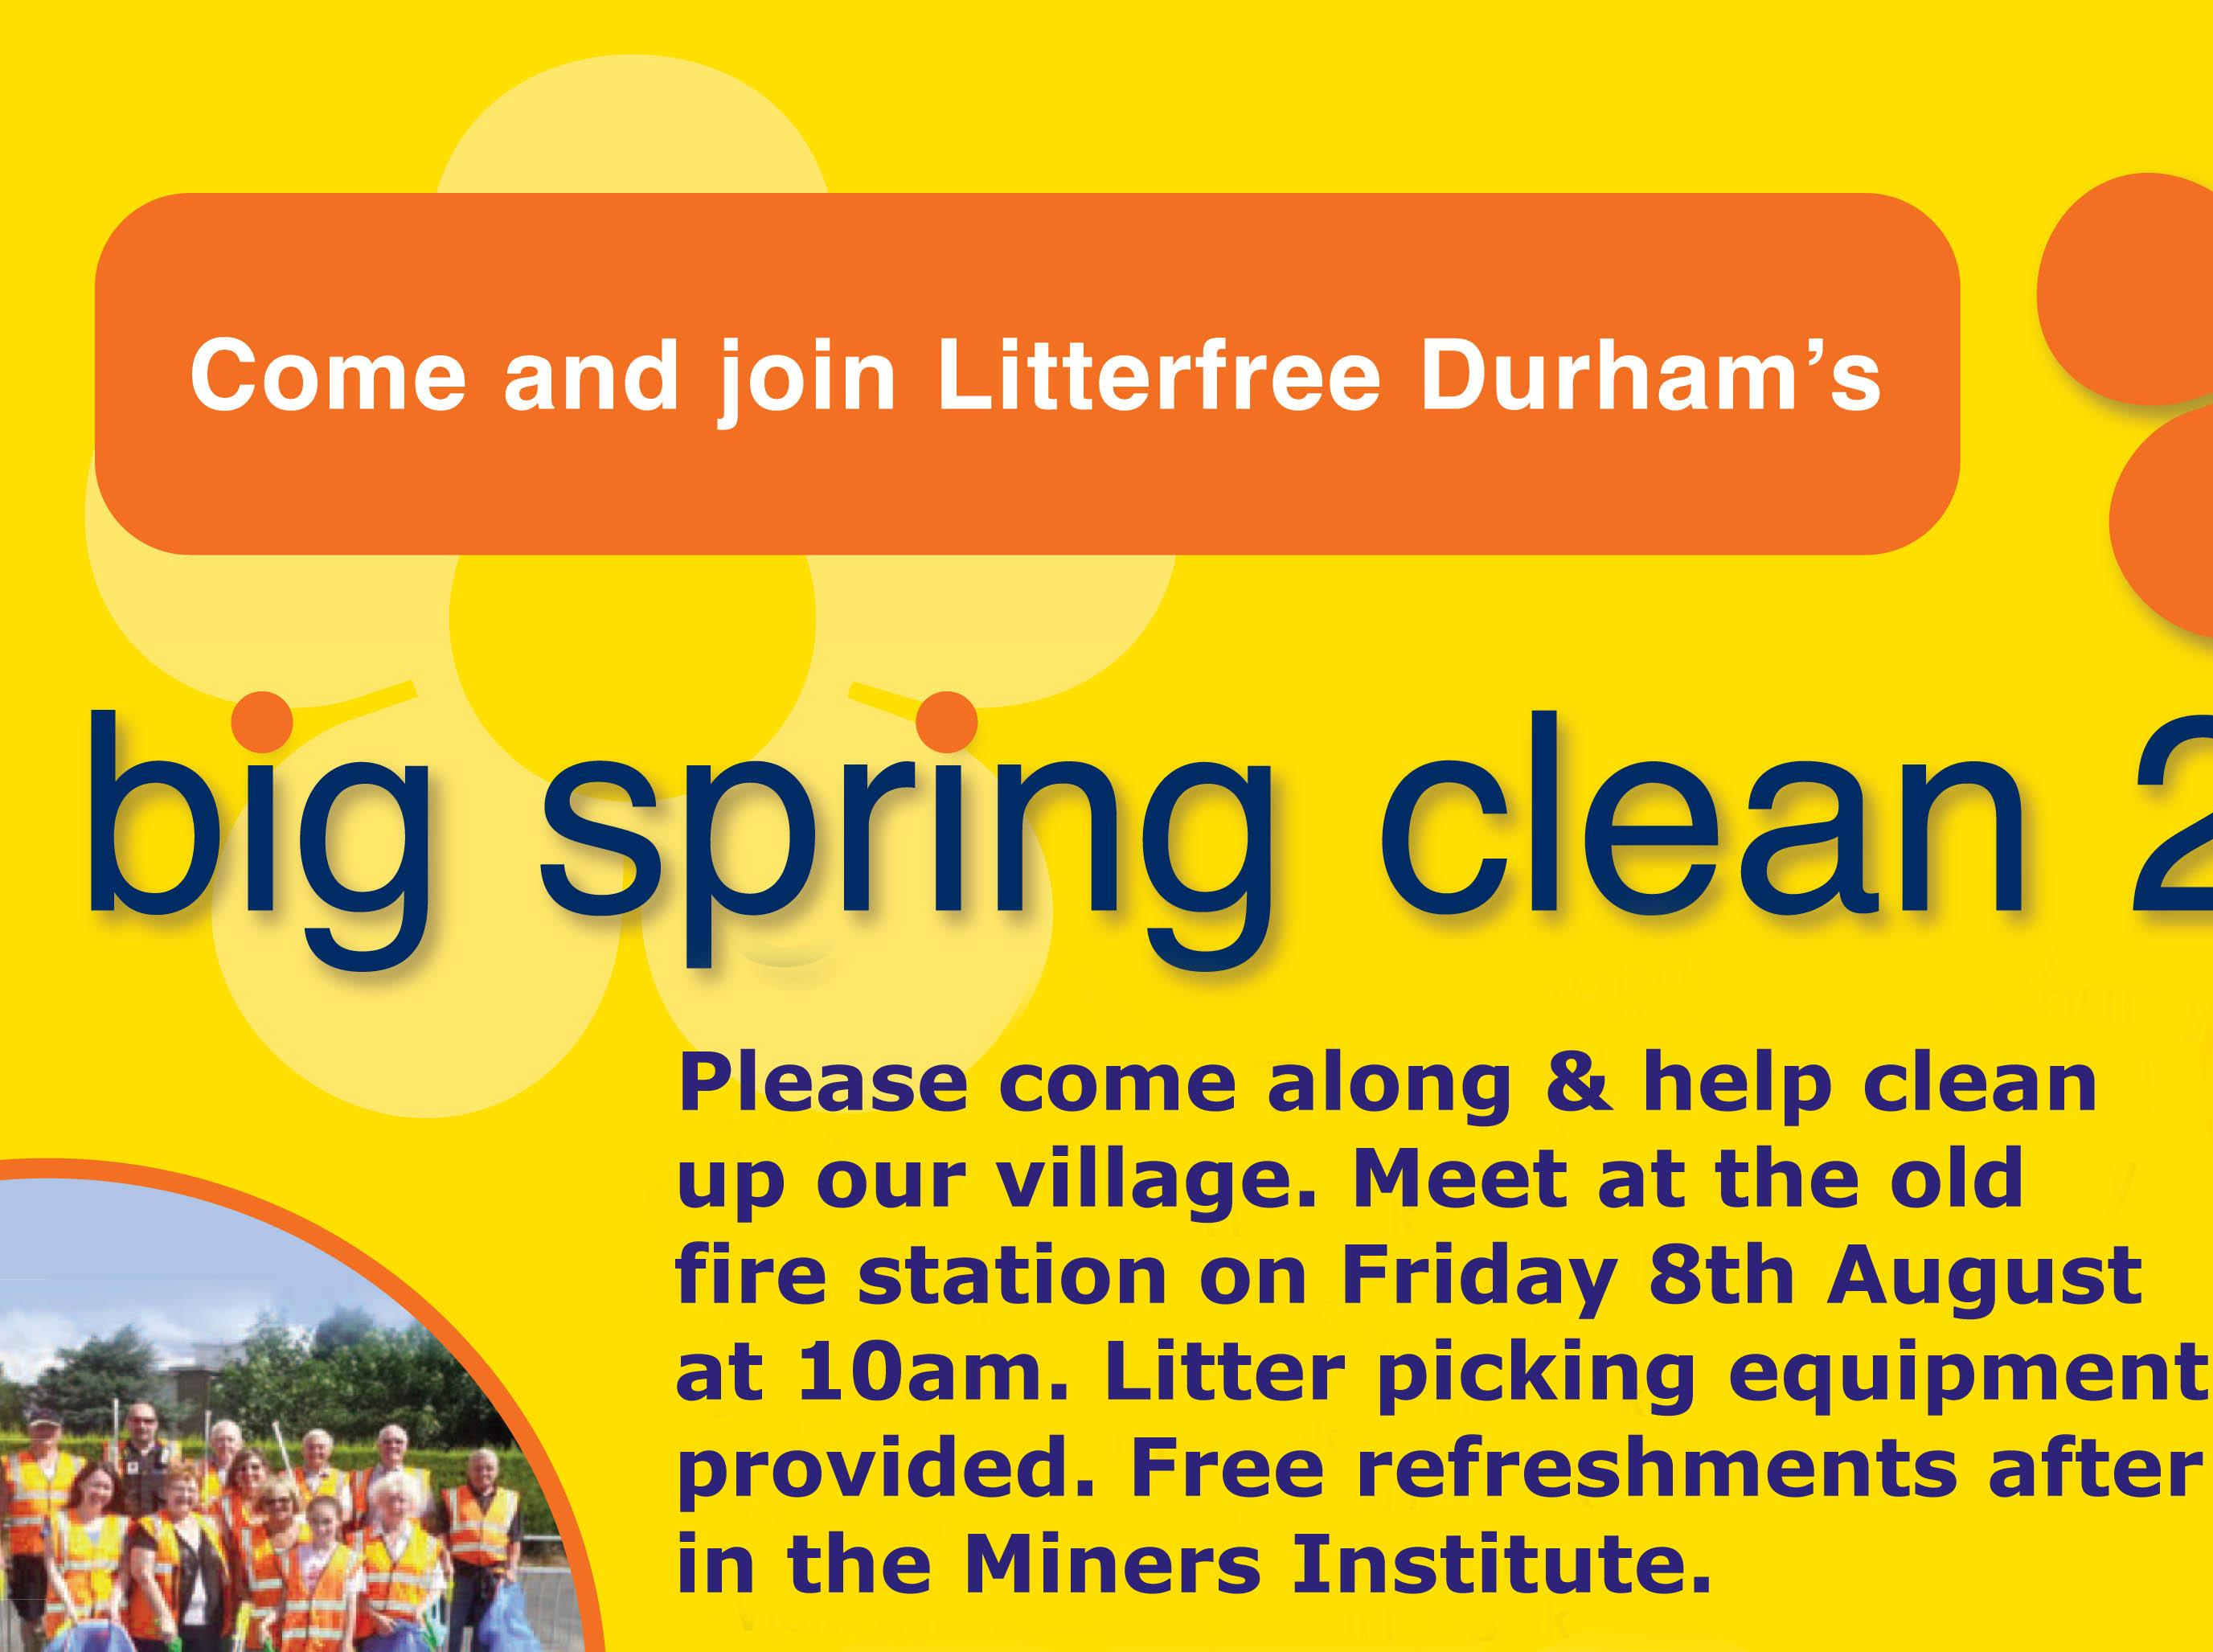 langley park big spring clean